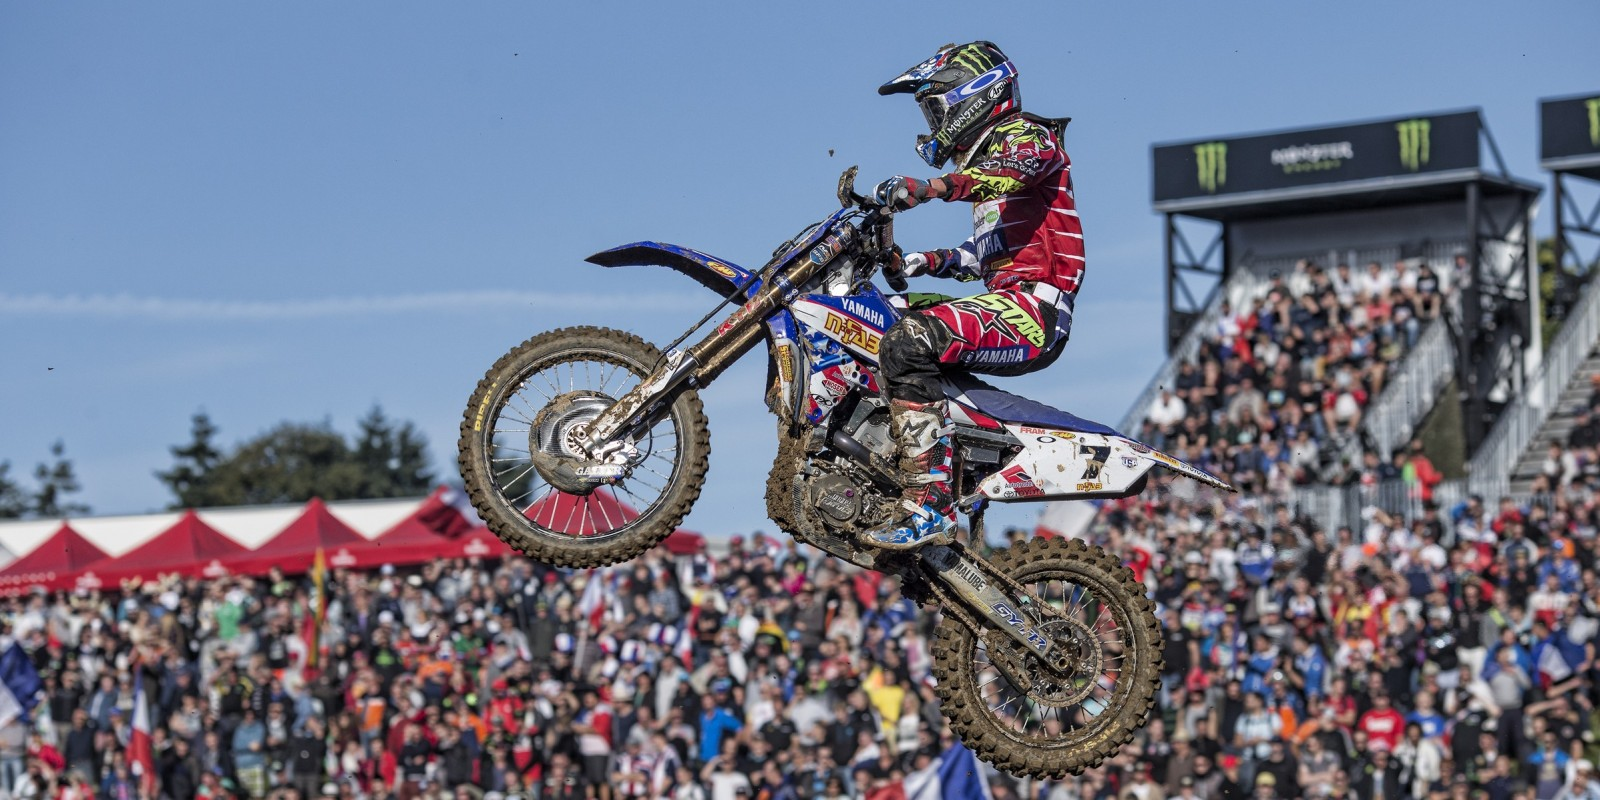 Monster Energy athlete Justin Barcia at the 2015 Monster Energy Motocross of Nations in Ernee, France.